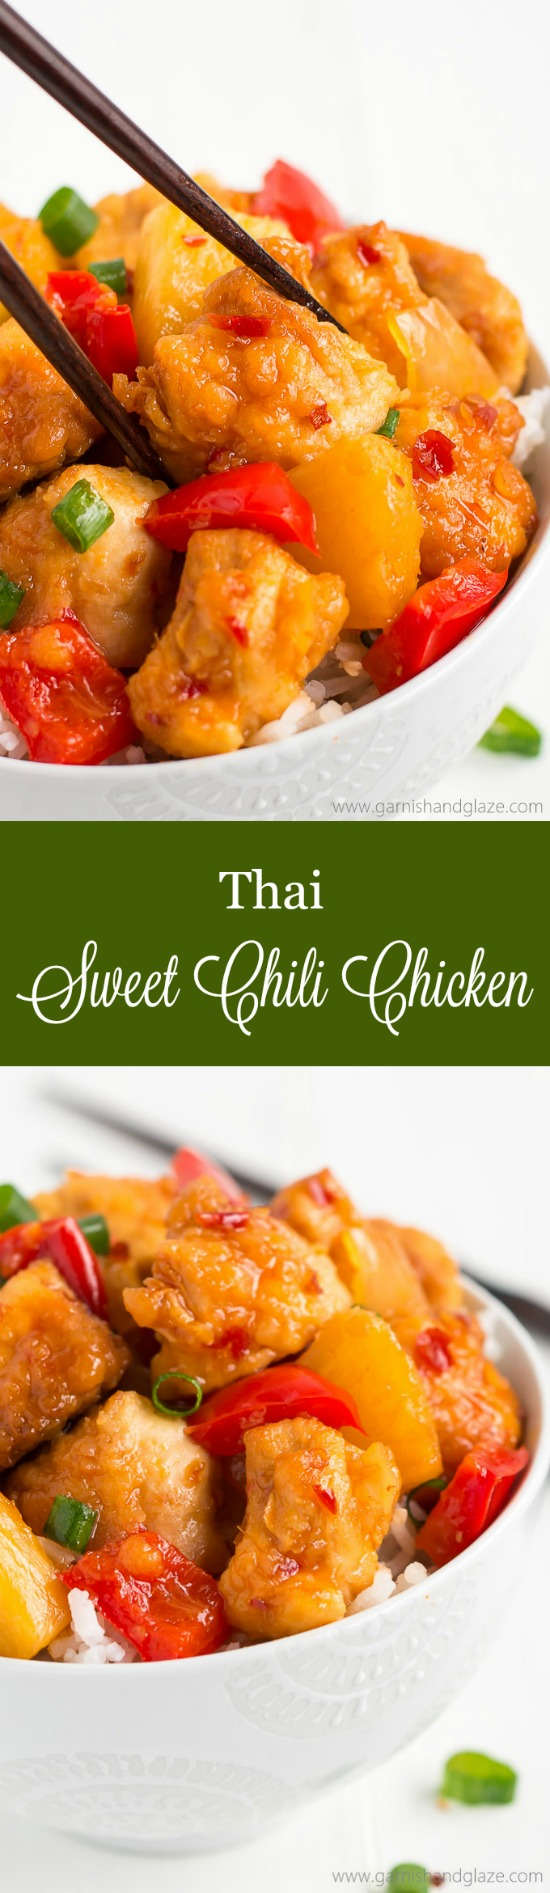 No need to order take-out with this sweet and spicy SLOW COOKER THAI SWEET CHILI CHICKEN! It's got the same great texture without all the grease!